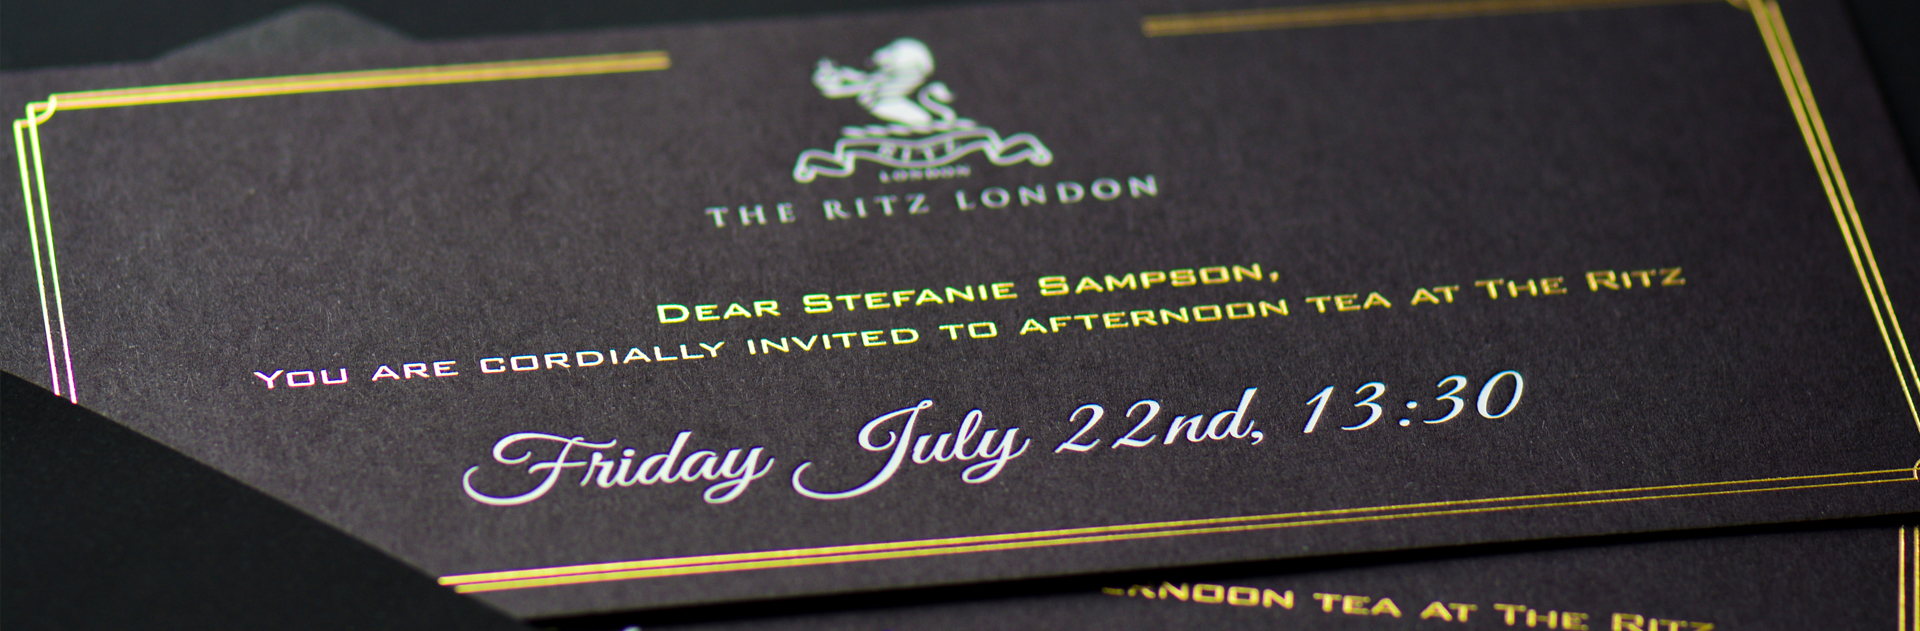 Bespoke corporate invitations